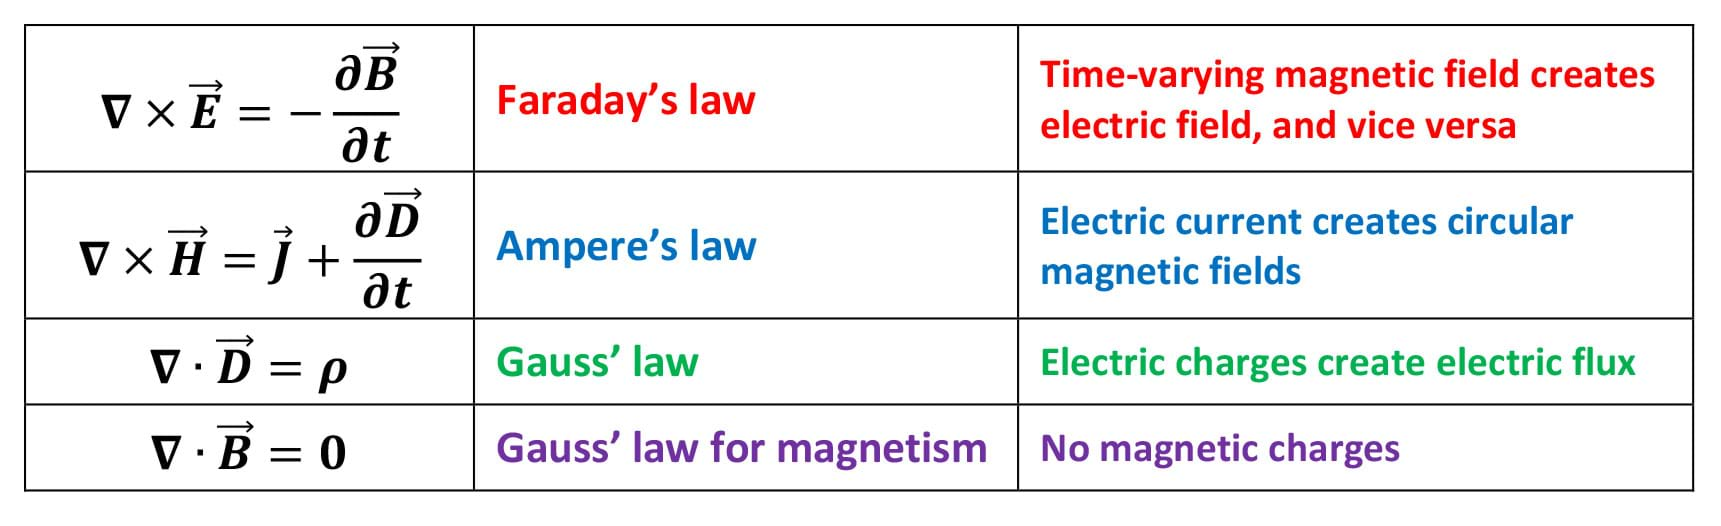 A table provides four equations: 1) Faraday's law: Time varying magnetic field creates electric field, and vice versa; 2) Ampere's law: Electric current creates circular magnetic fields; 3) Gauss' law: Electric charges create electric flux; and 4) Gauss' law for magnetism: no magnetic charges. The equations: Del cross vector E = negative partial derivative of vector B with respect to time, Del cross vector H = vector J plus the partial derivative of vector D with respect to time, Del dot vector D = rho, Del dot vector H = 0, respectively.